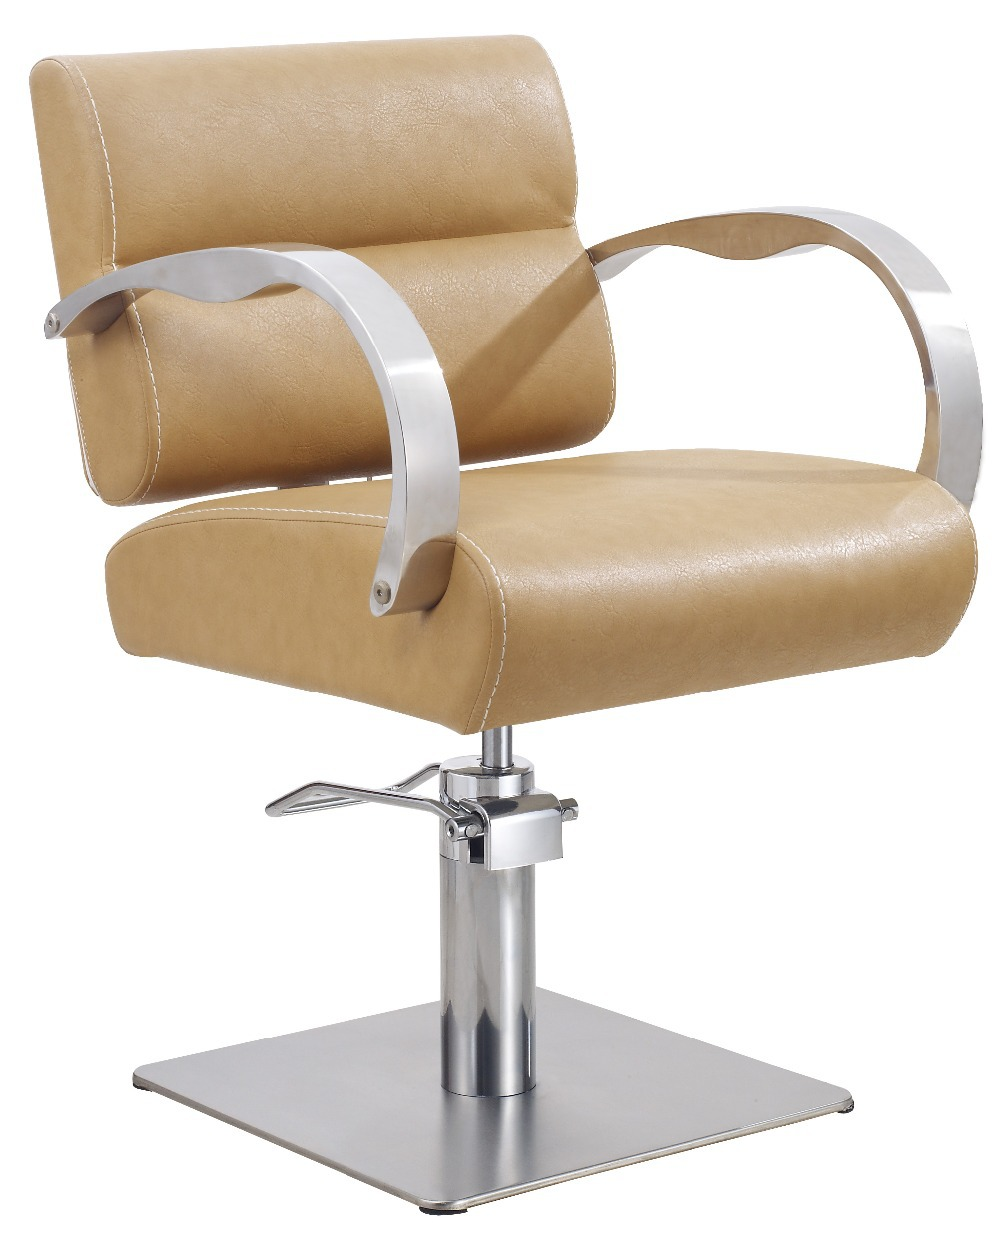 Styling chair salon chair used hair styling chairs sale  sc 1 st  Alibaba & Styling ChairSalon ChairUsed Hair Styling Chairs Sale - Buy Used ...